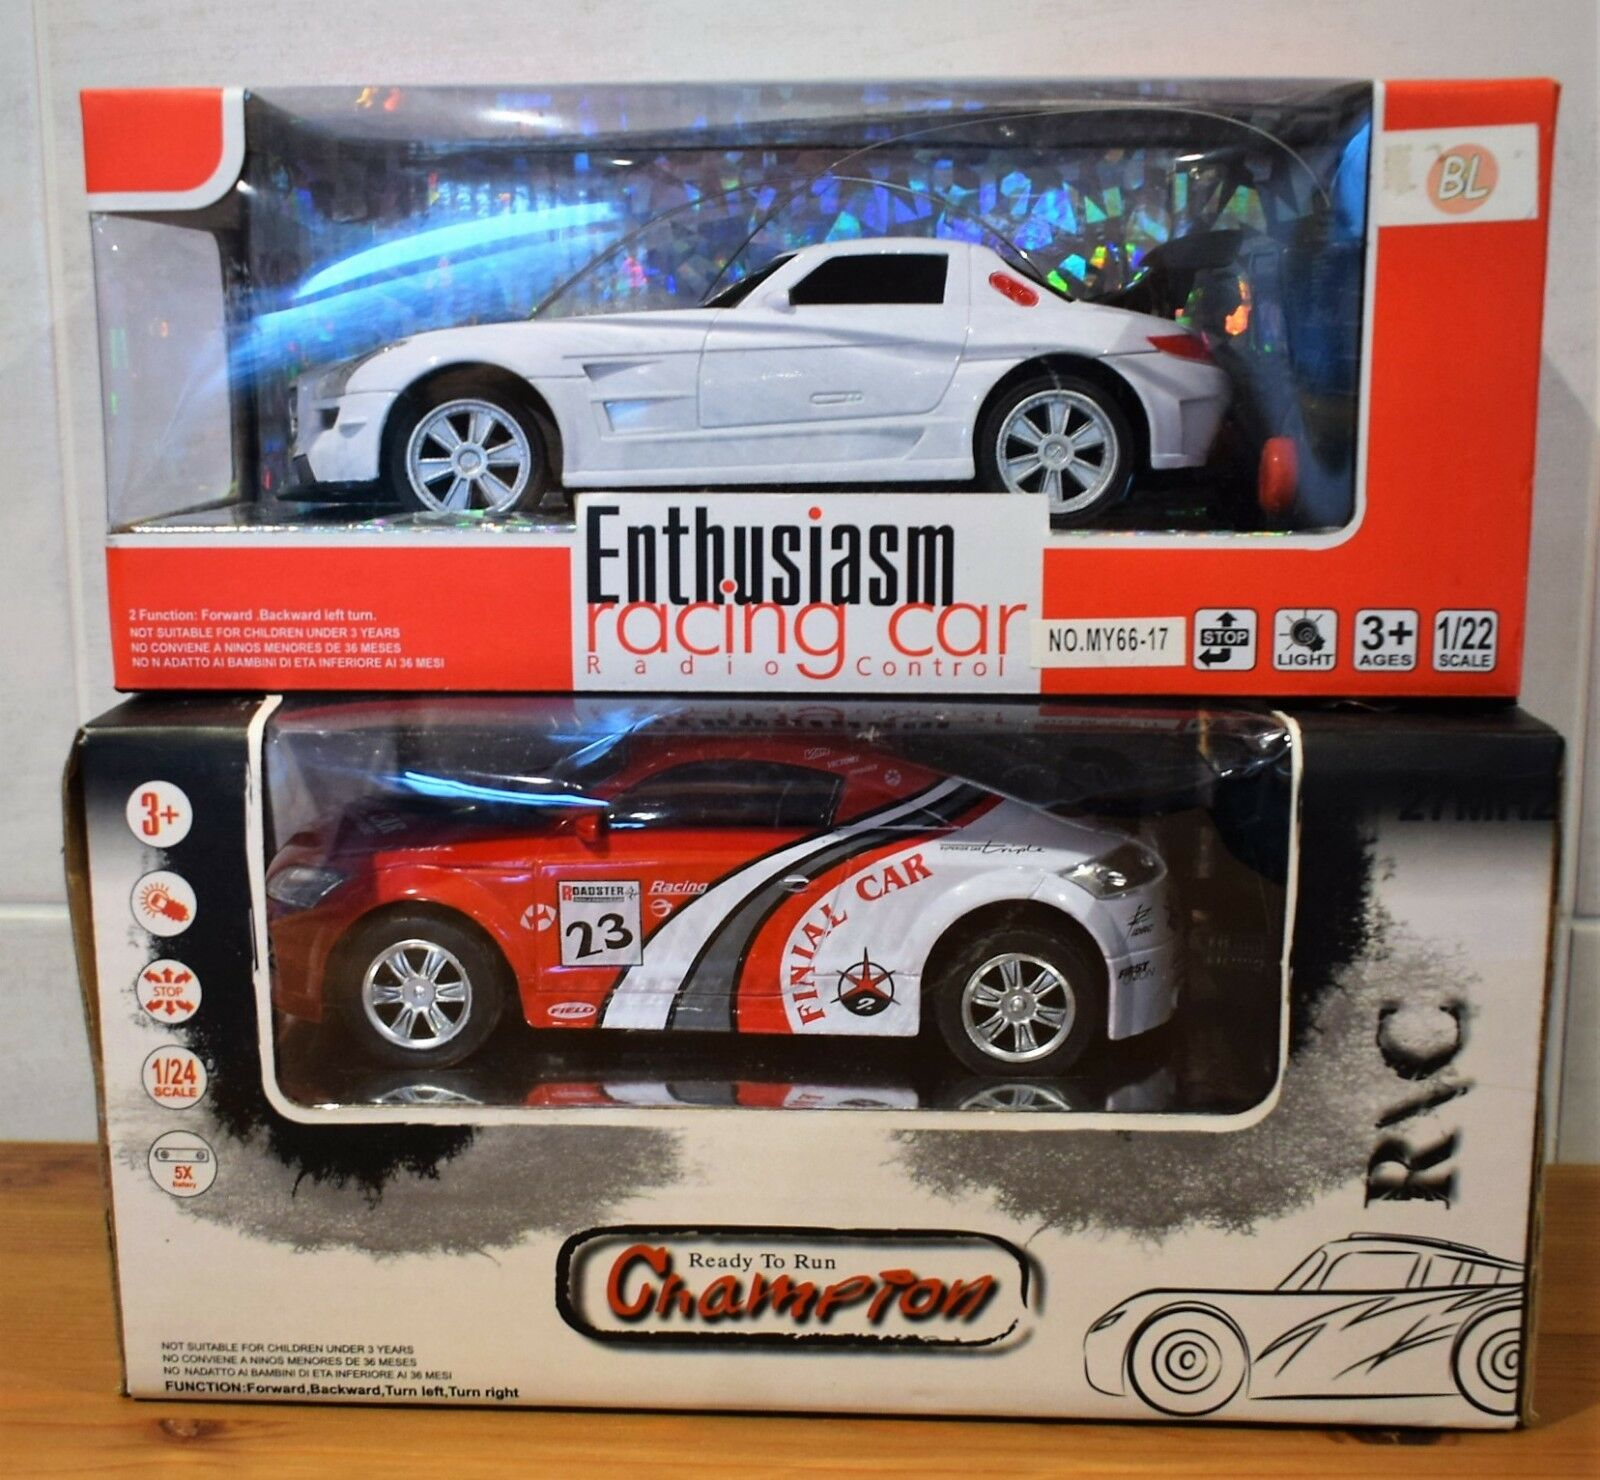 RADIO CONTROLLED SPORT AUDI TT LIKE Or MERC LIKE 1 24 Or 1 22 SCALE BATTERY POWE